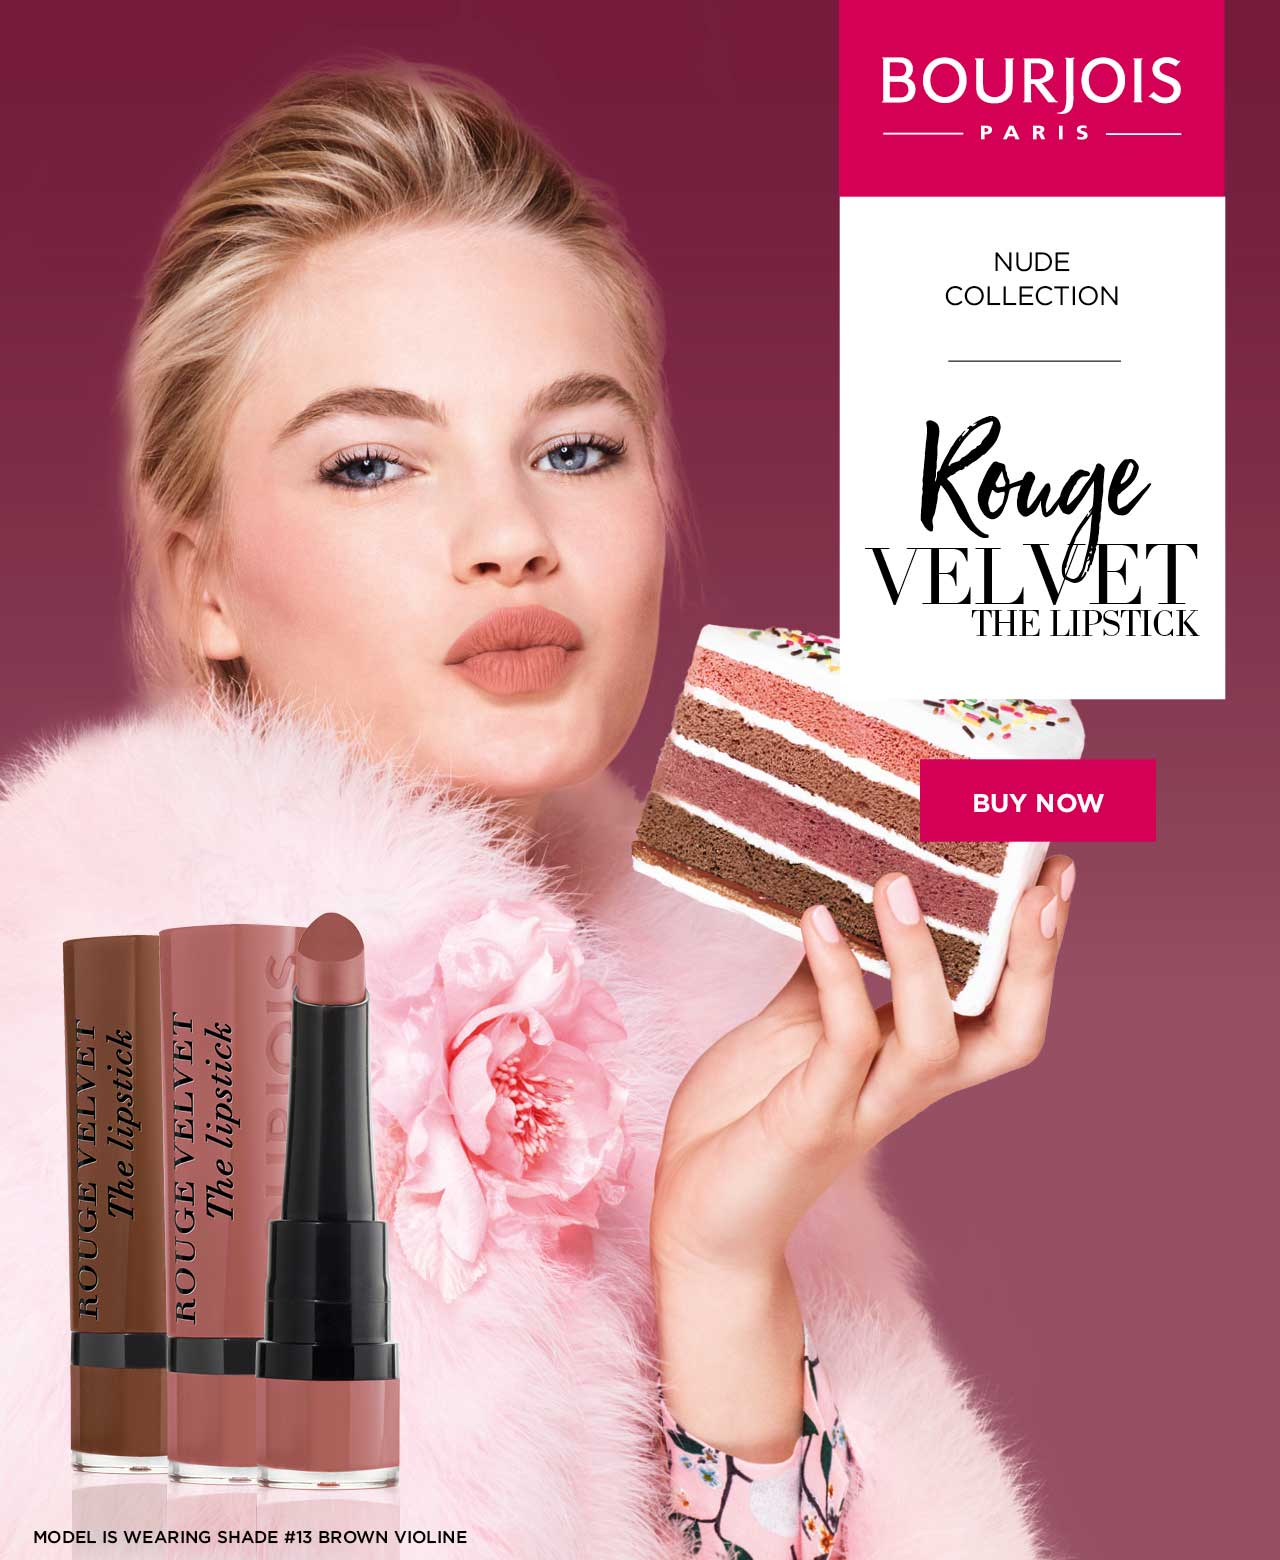 Bourjois Rouge Velvet the Lipstick. Shop Now